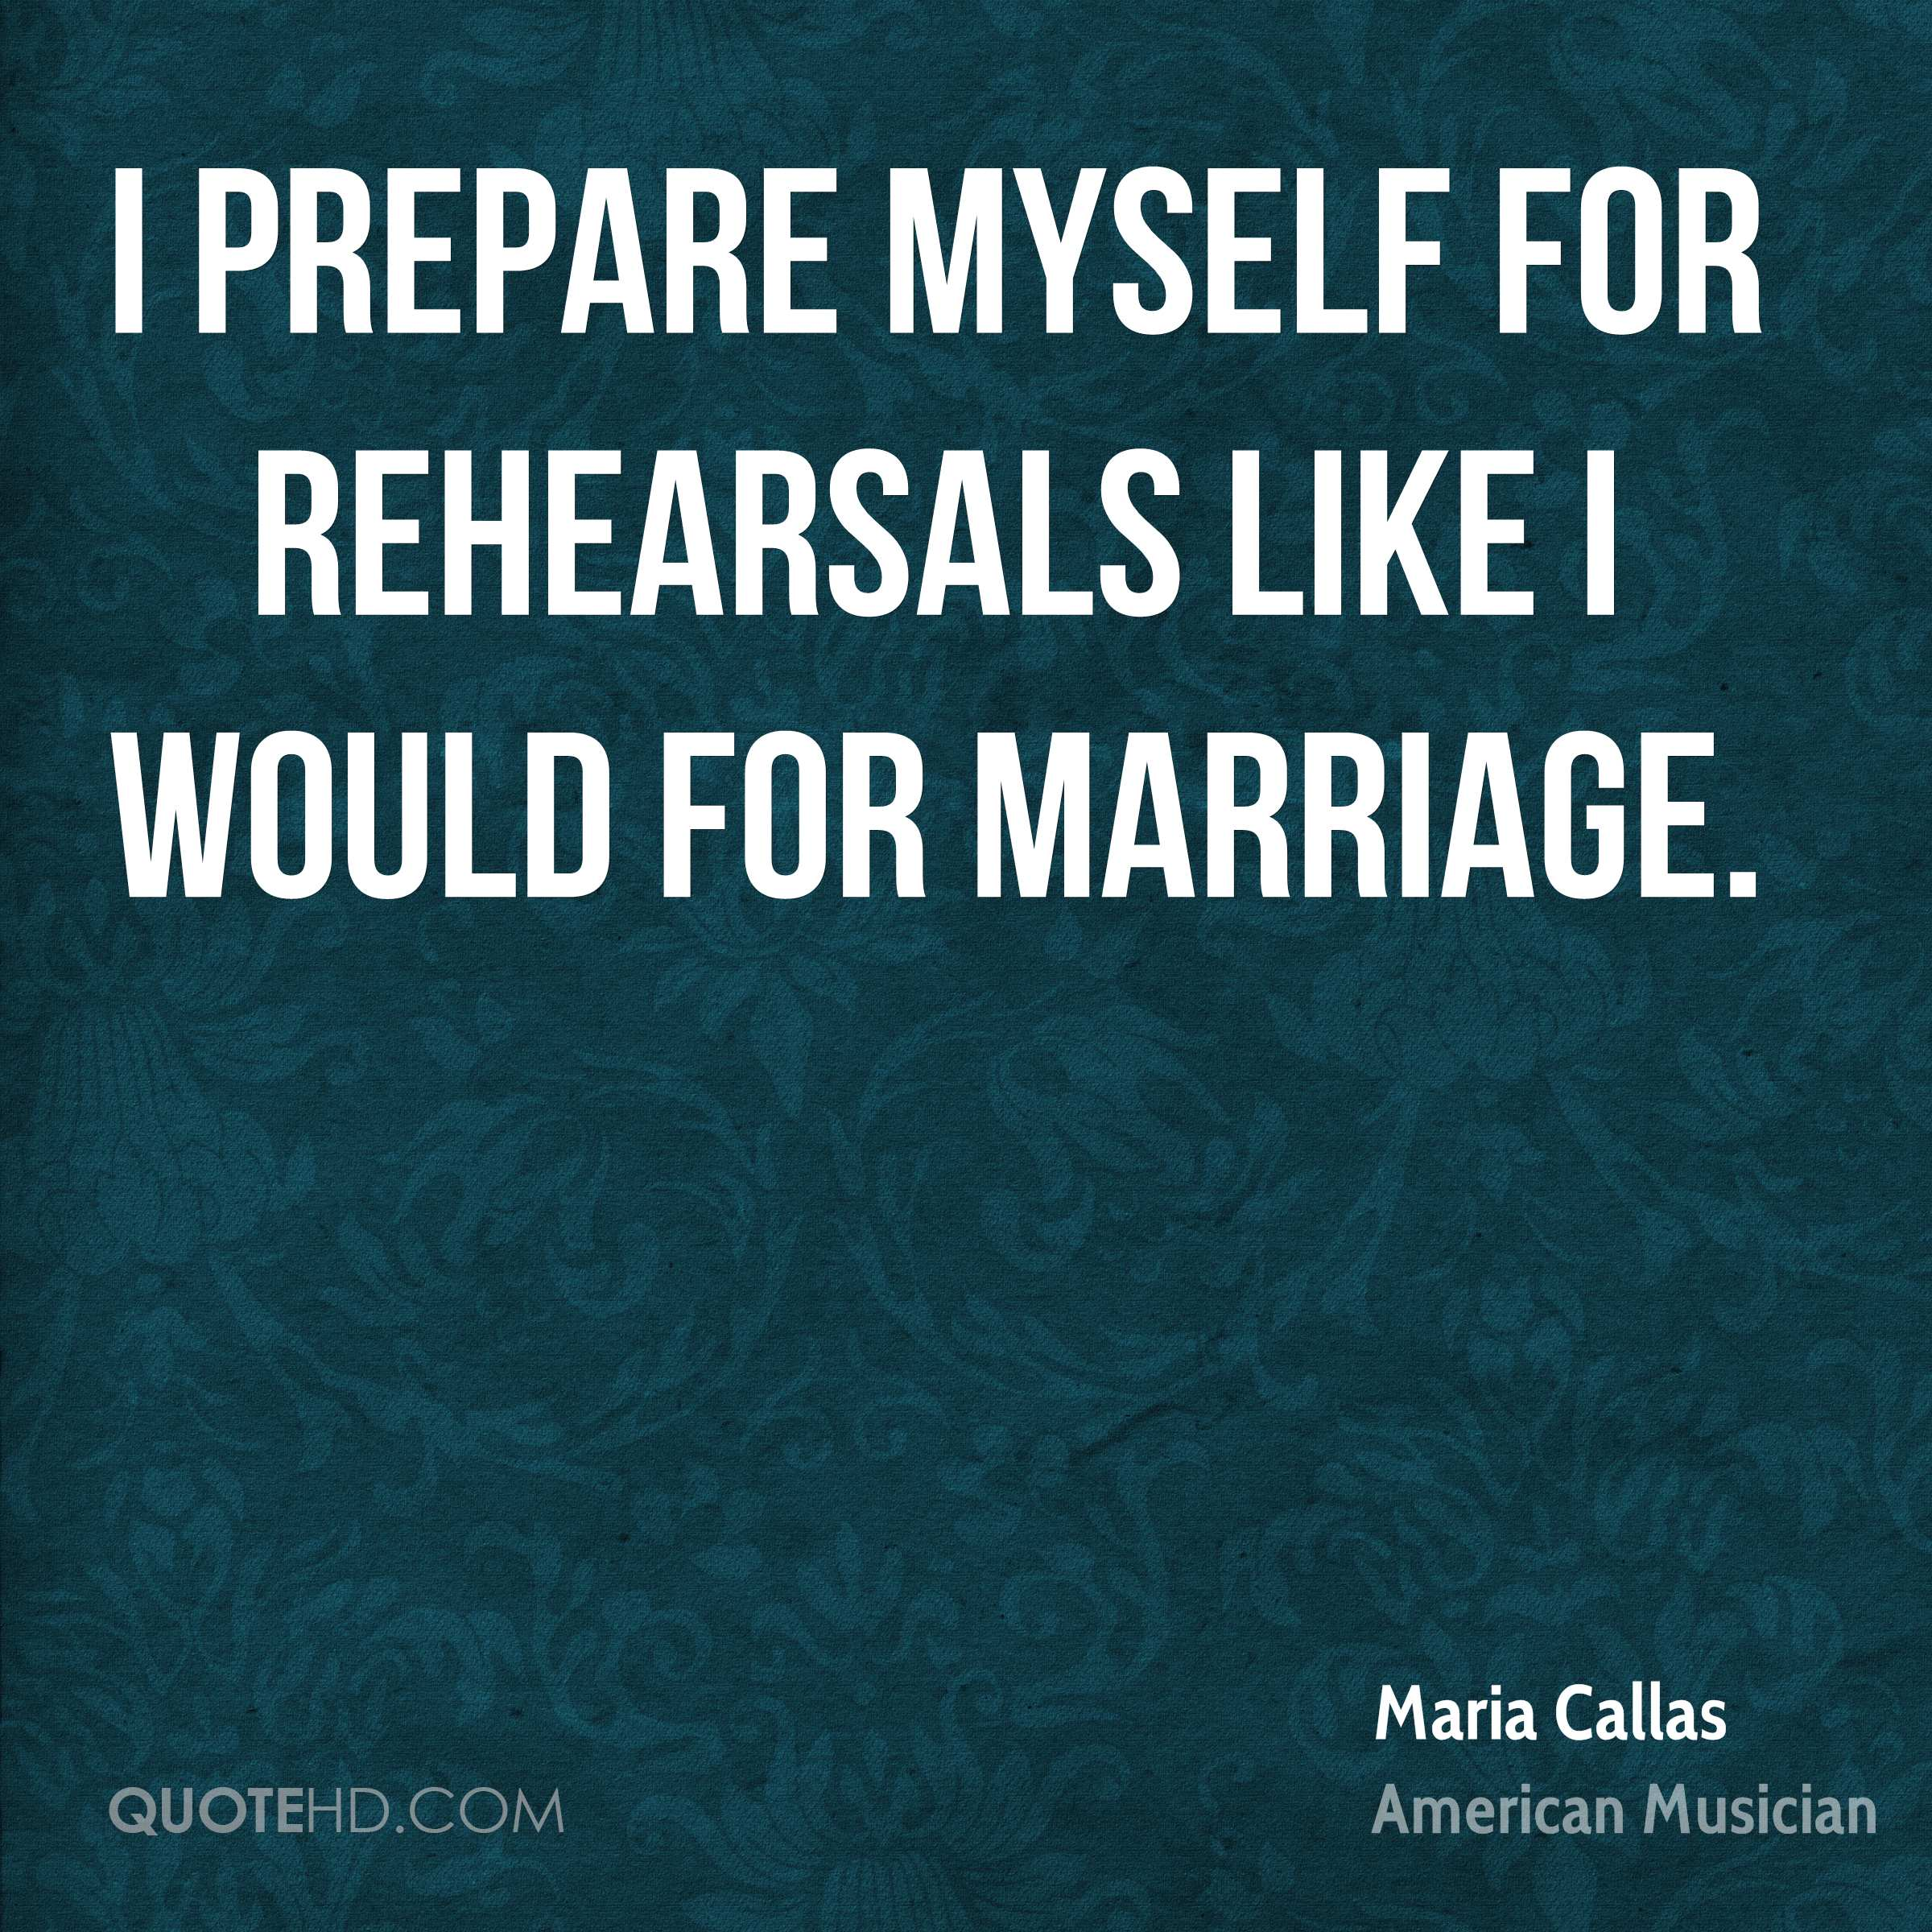 I prepare myself for rehearsals like I would for marriage.